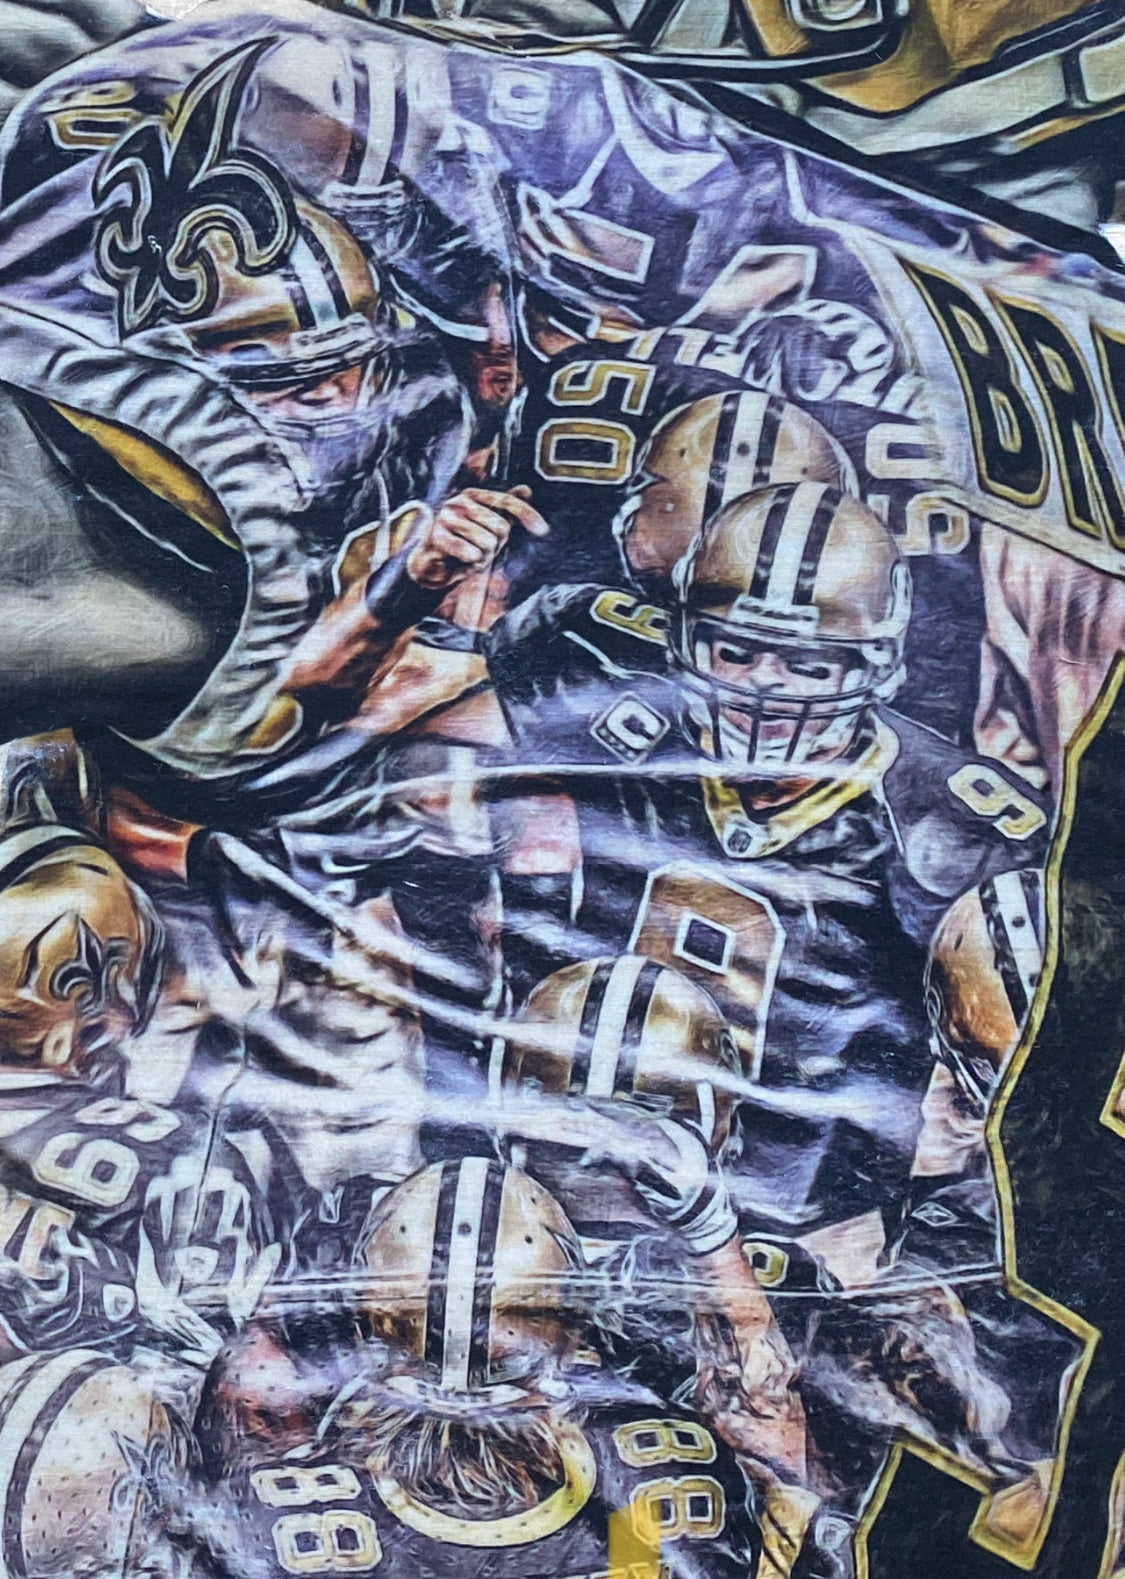 """Brees"" (Drew Brees) New Orleans Saints - NFL Football"